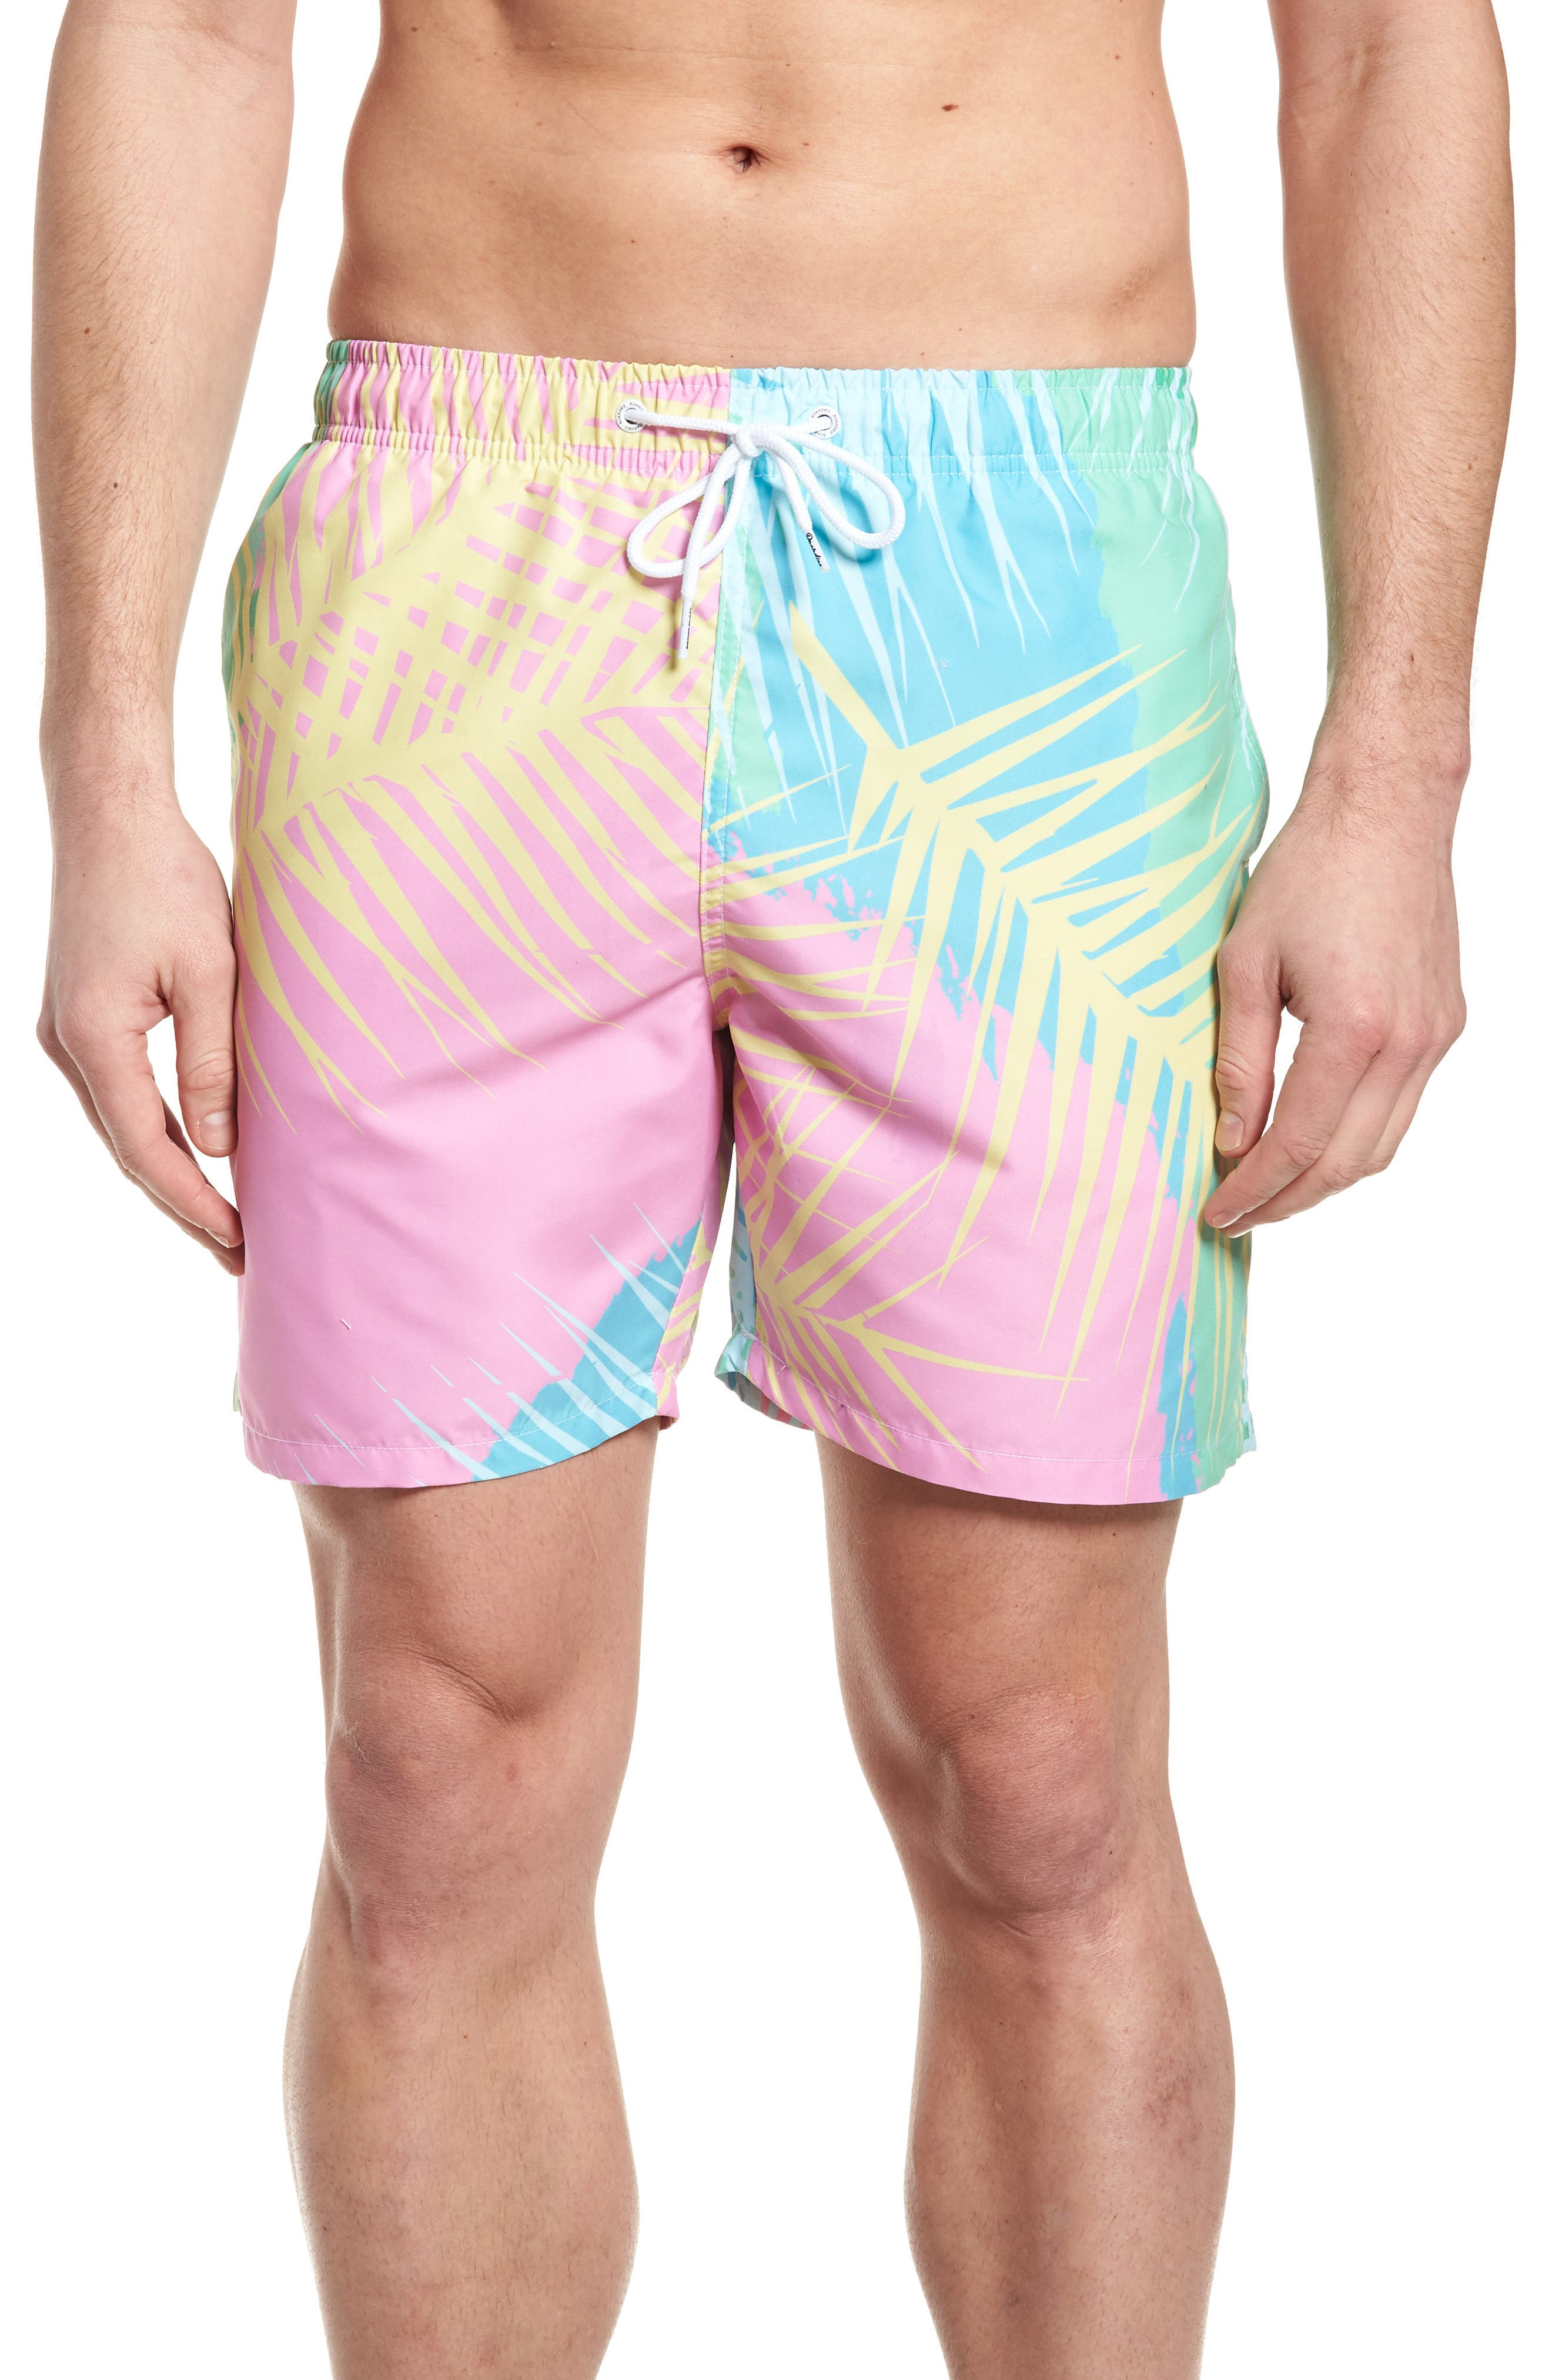 Tropicano Swim Trunks,                             Main thumbnail 1, color,                             650